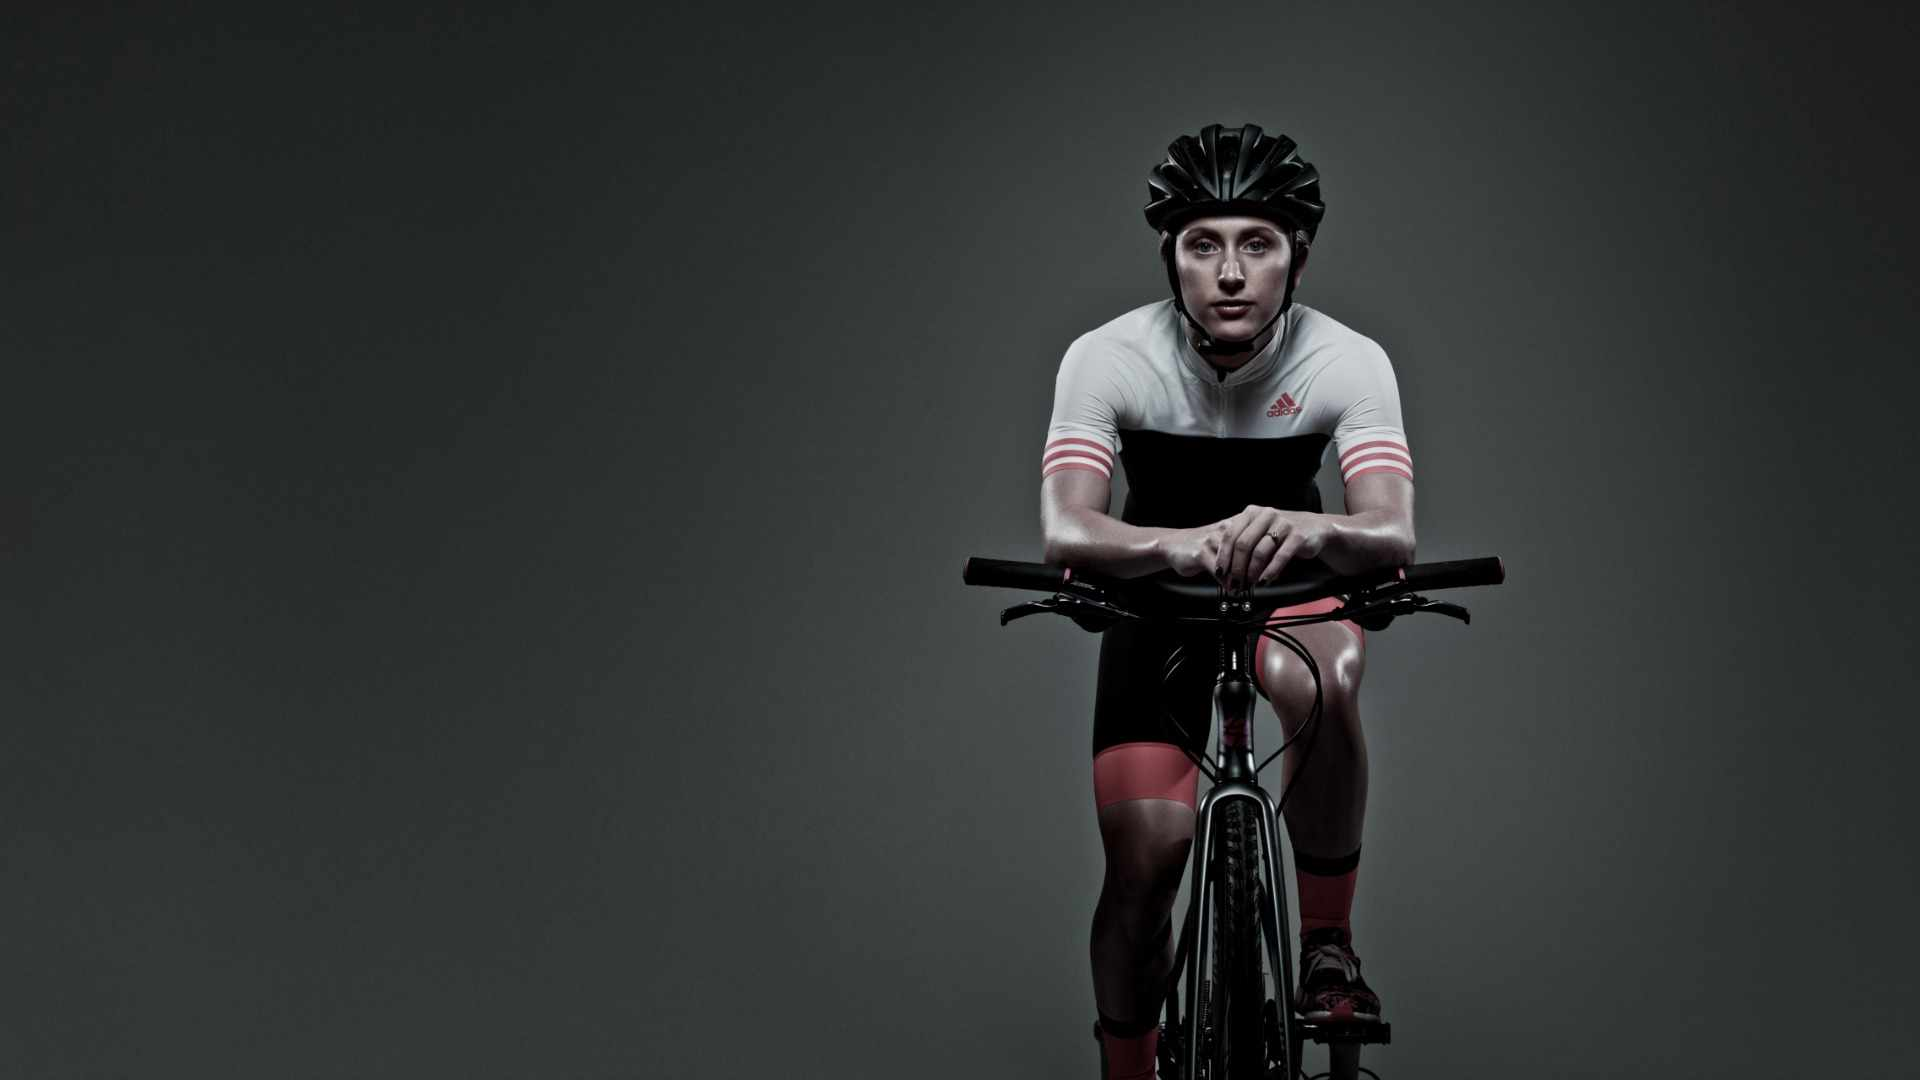 Olympian Laura Trott is the latest athlete to develop a range of bikes with Halfords